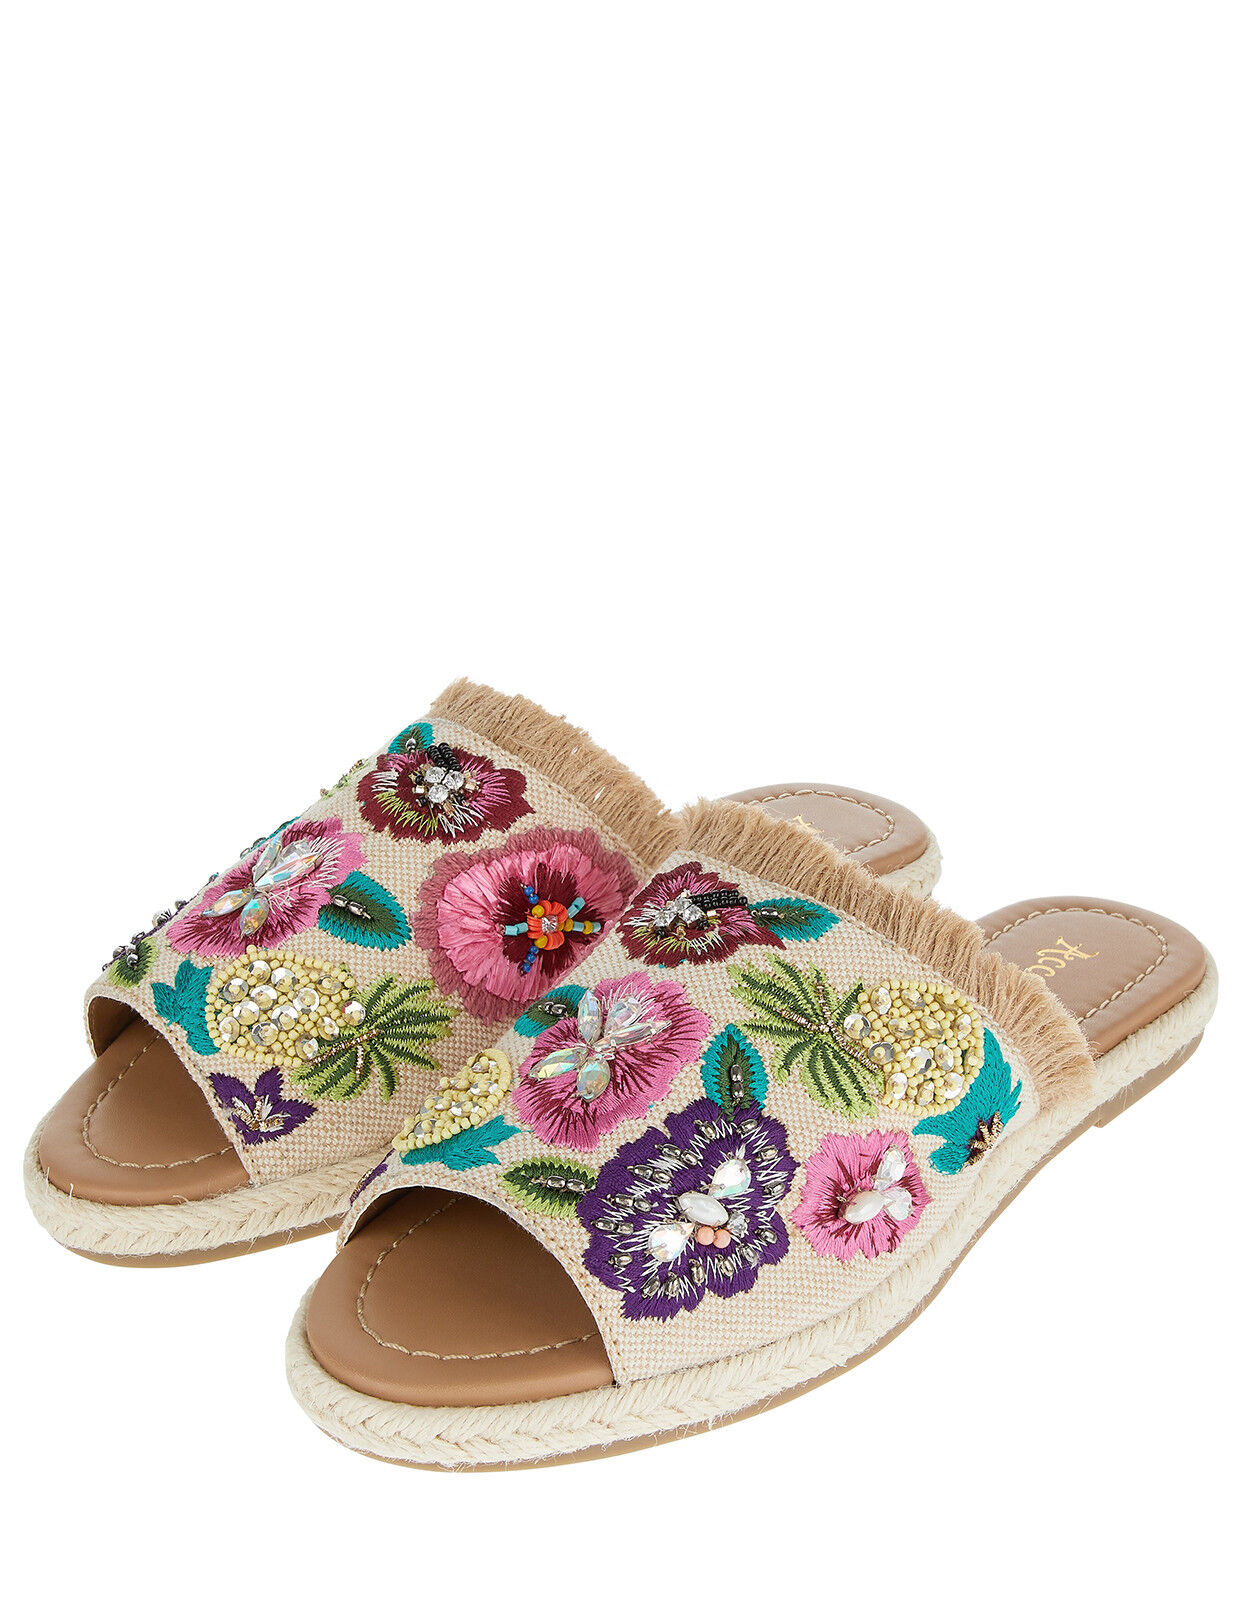 MONSOON ACCESSORIZE ELLA EMBROIDErot SLIDER JUTE SLIDES PINEAPPLE KITSCH 5 38 7